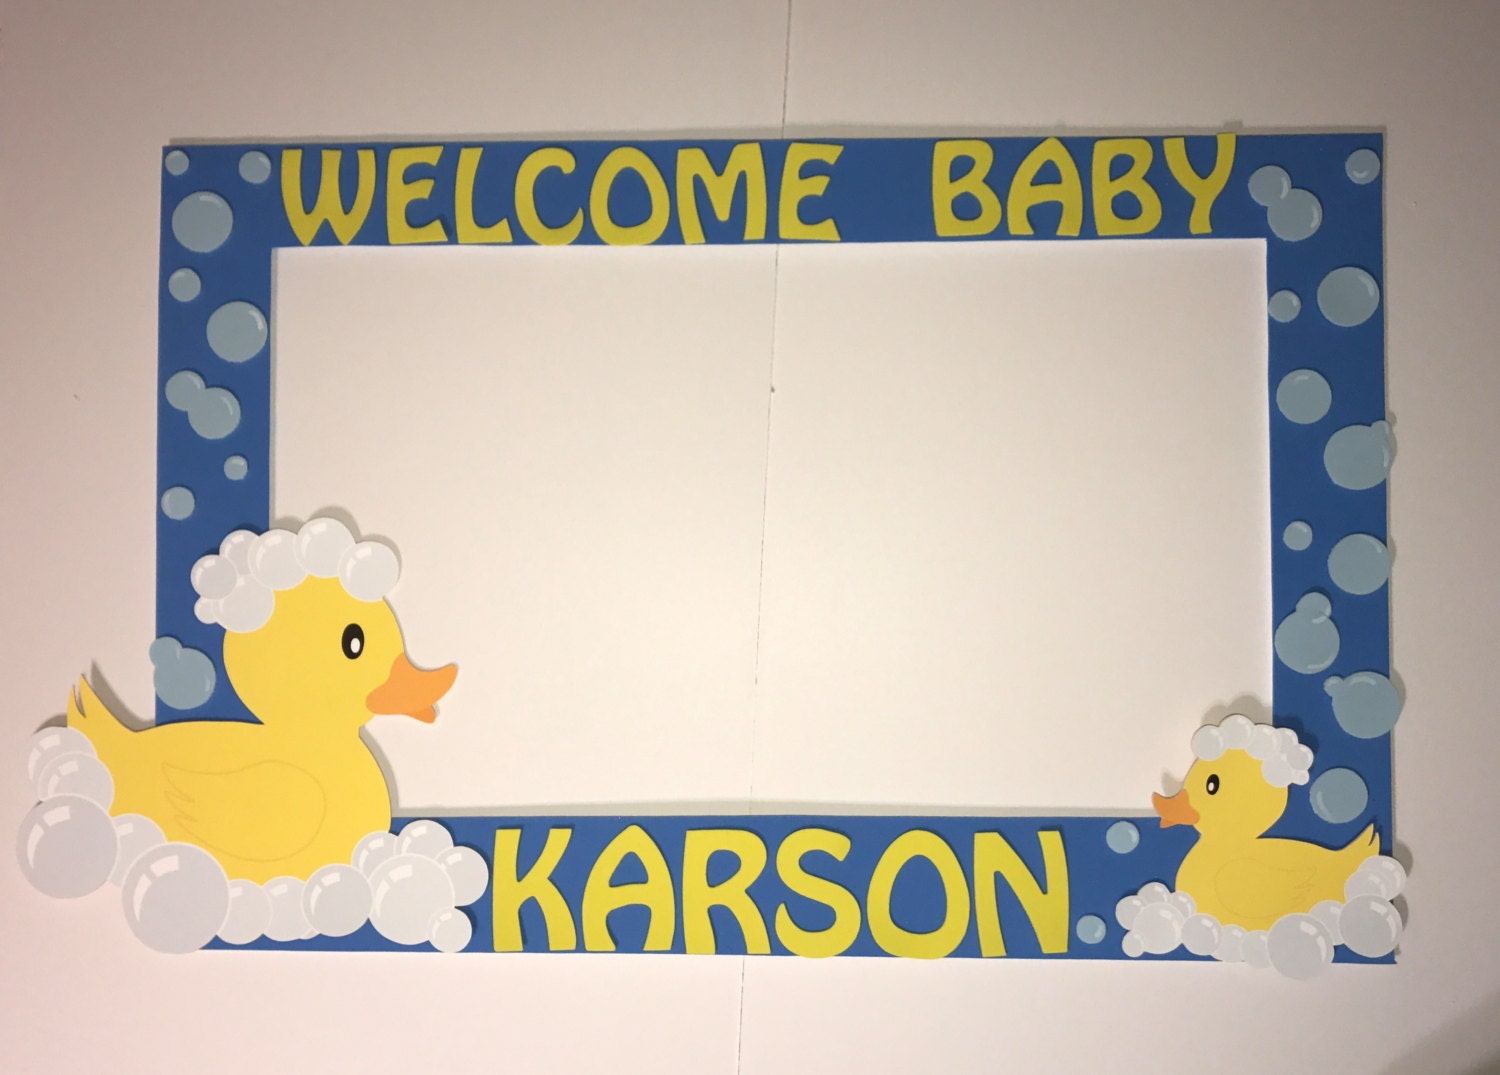 Delightful Rubber Duck Baby Shower Party Photo Booth Frame